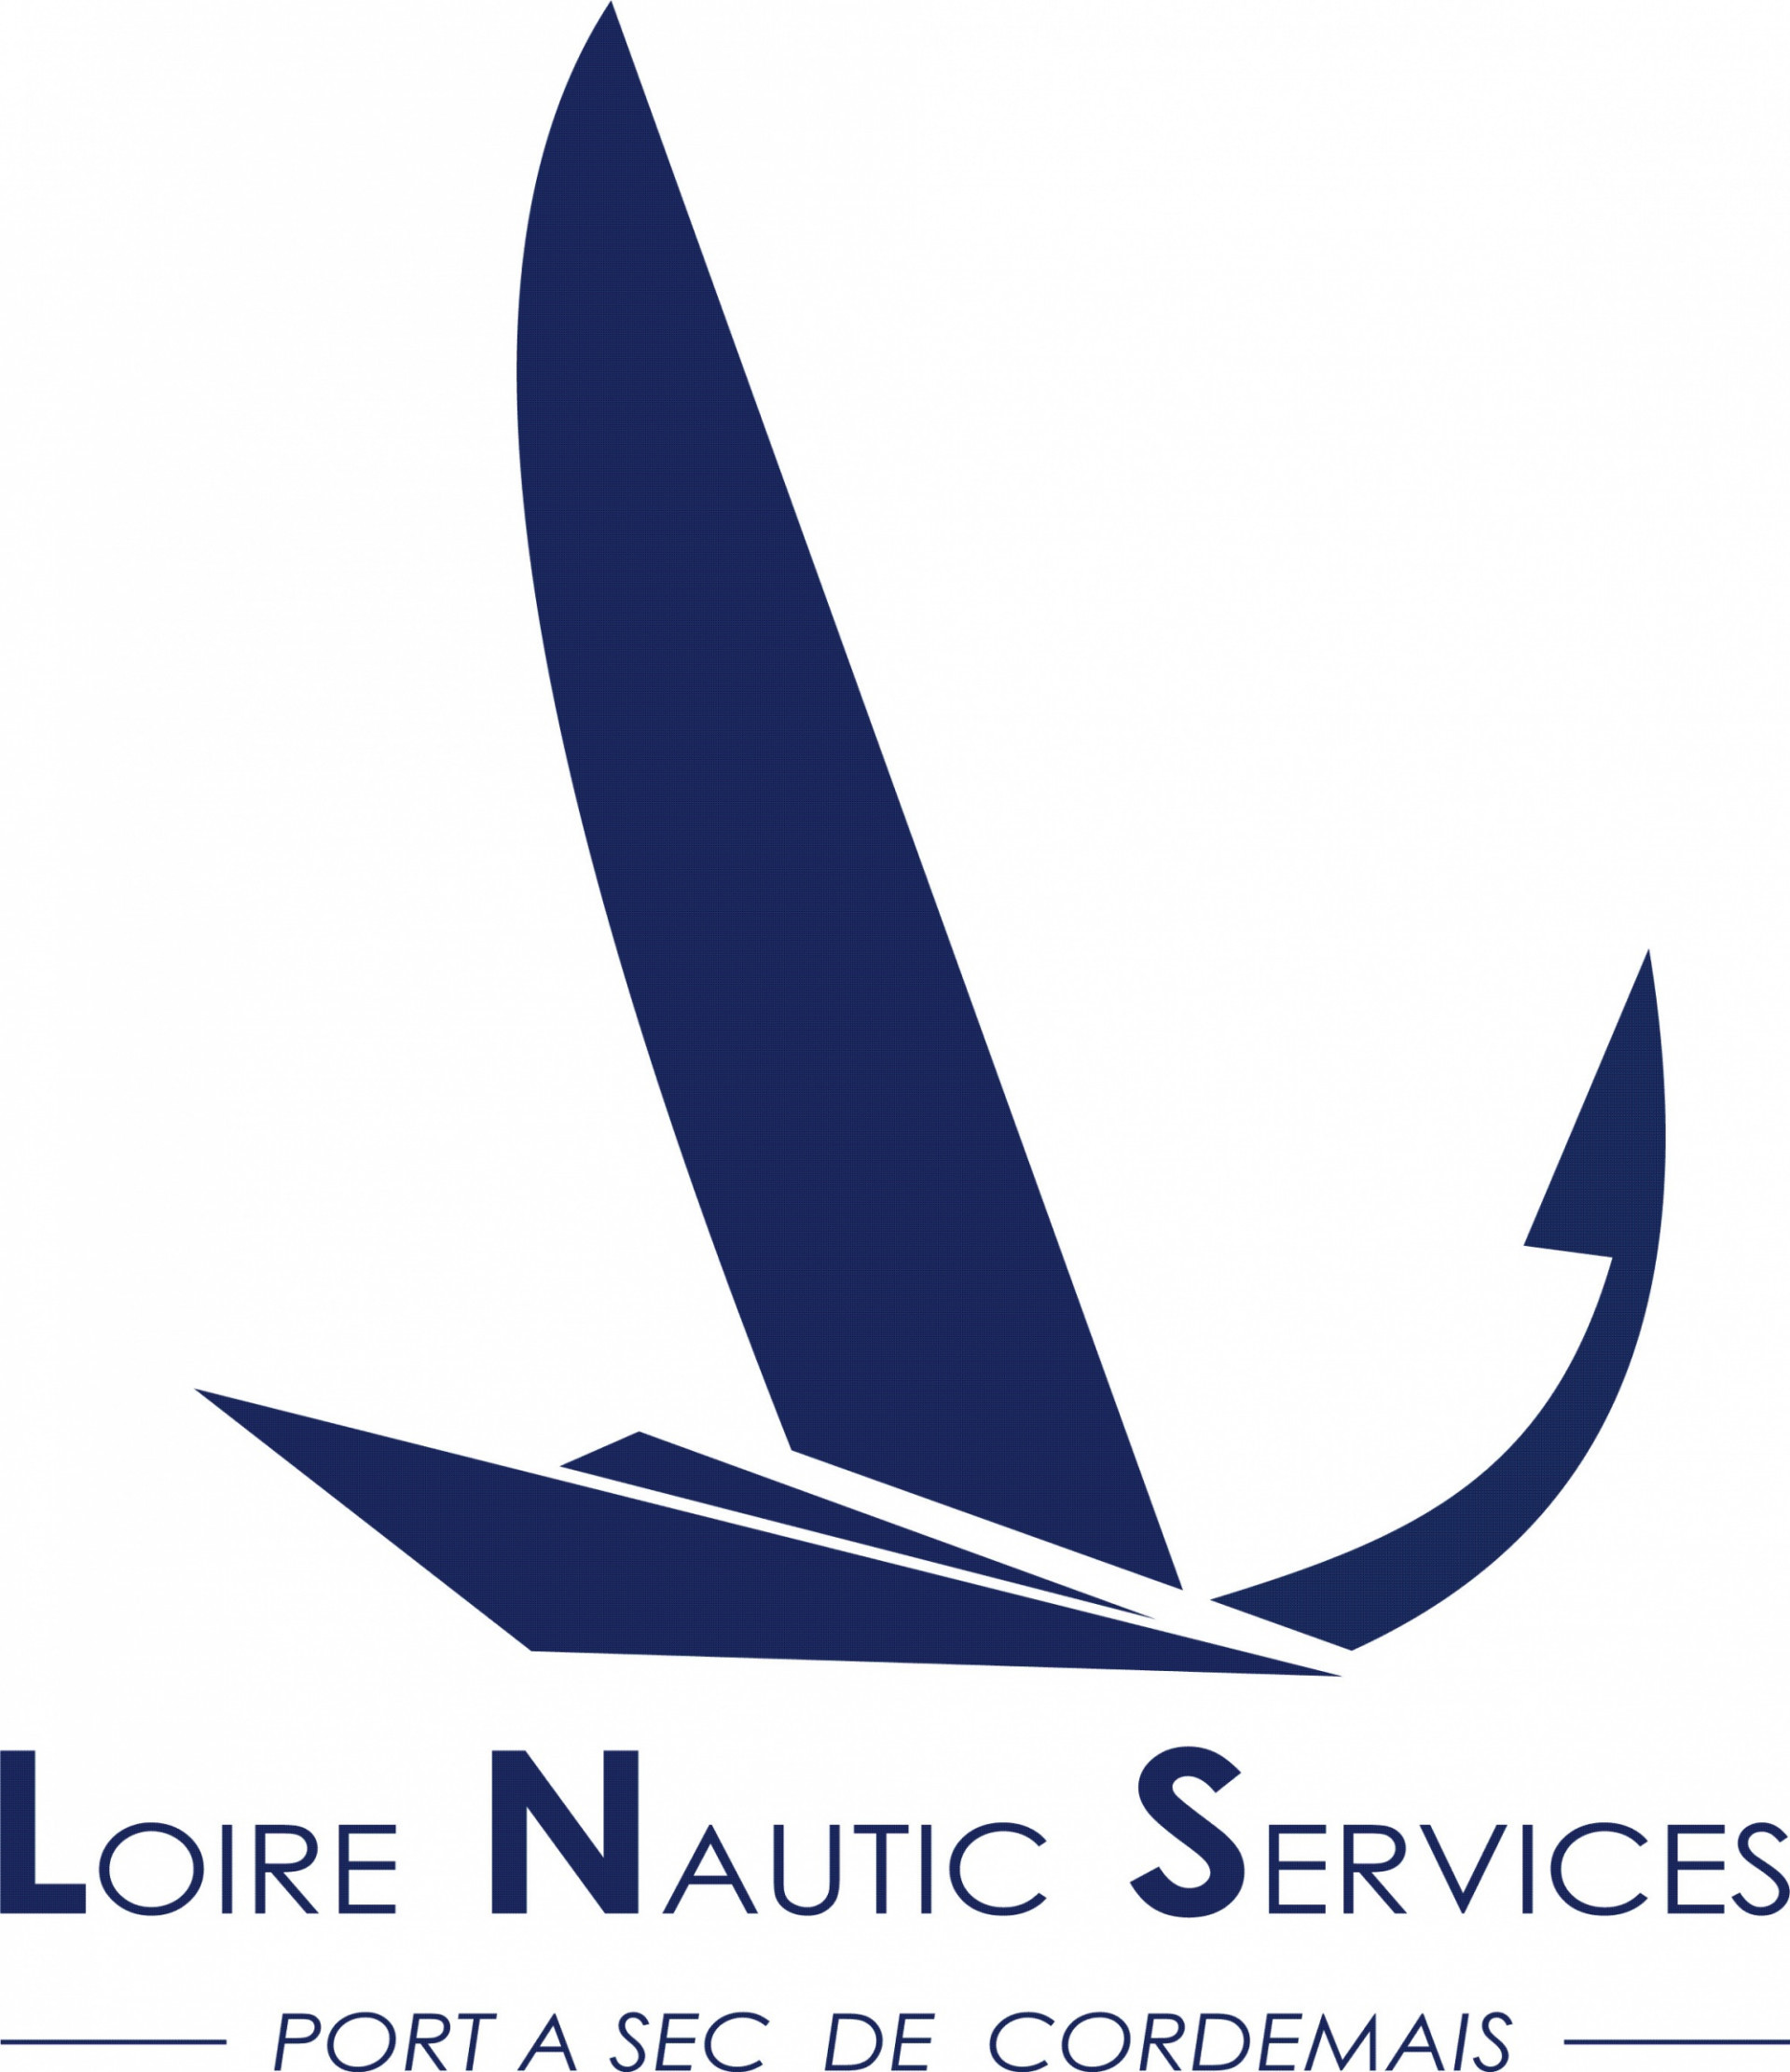 LOIRE NAUTIC SERVICES - PORT A SEC